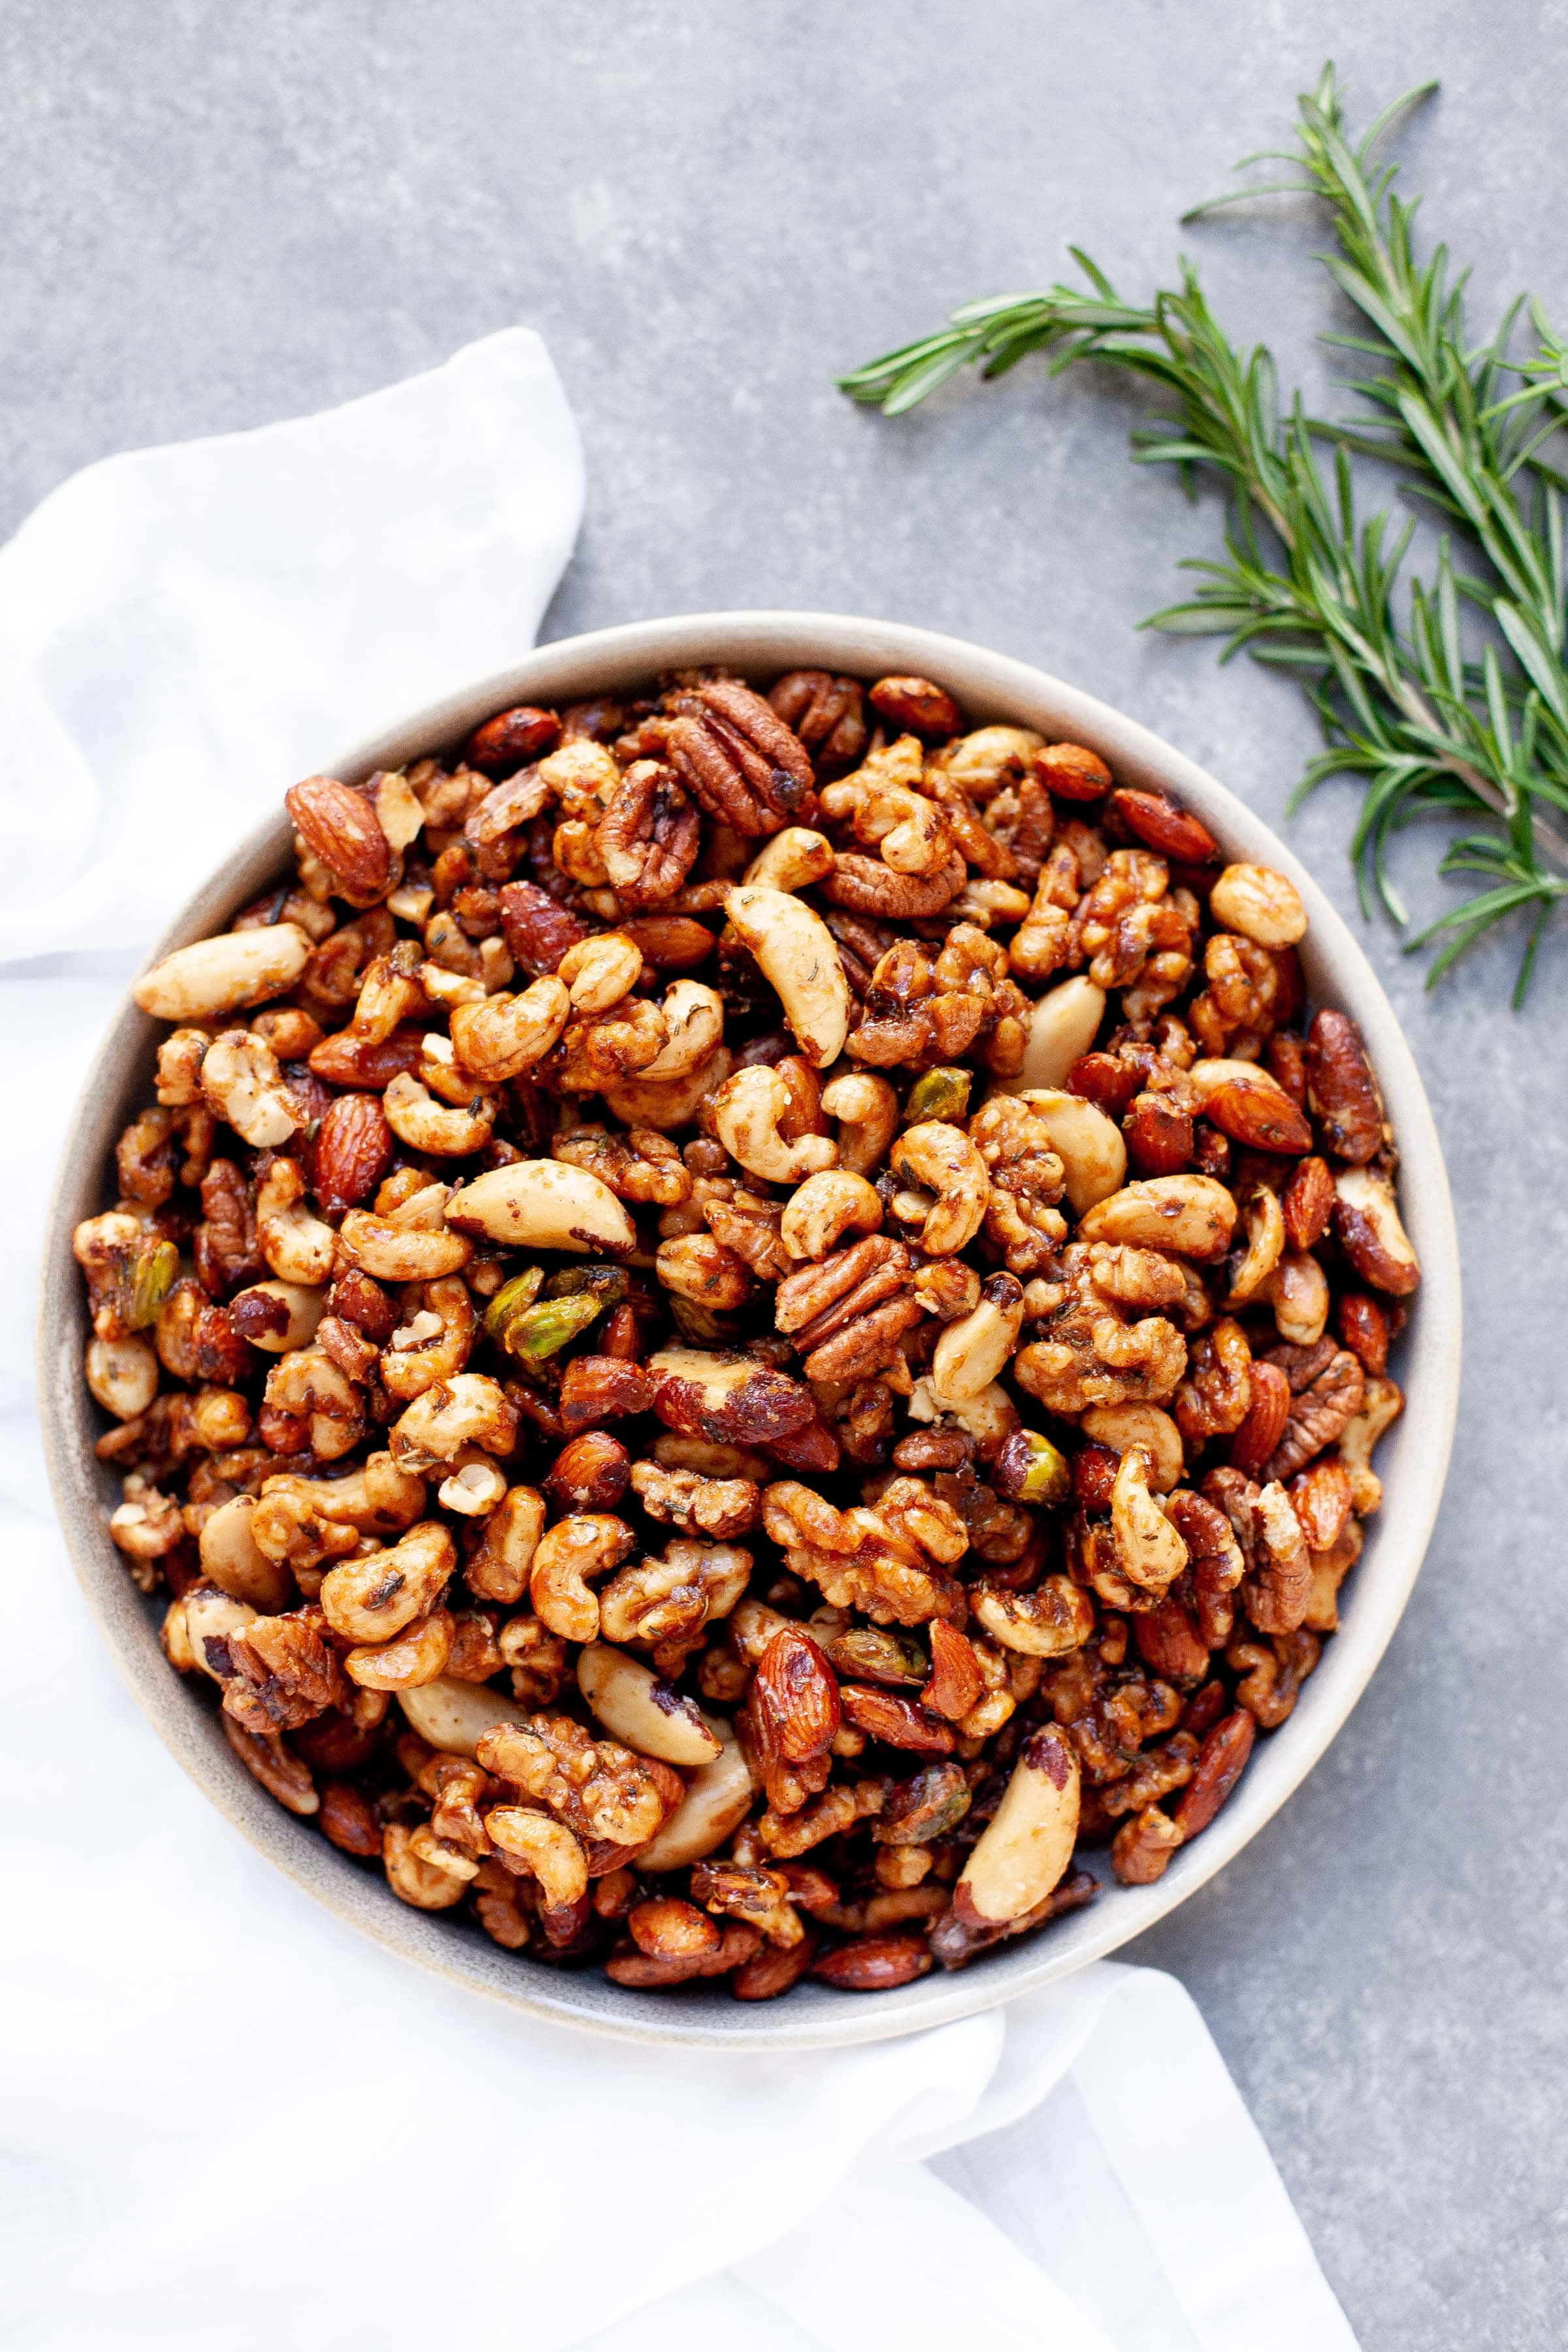 White bowl full of Maple Rosemary Bar Nuts, with sprigs of rosemary nearby